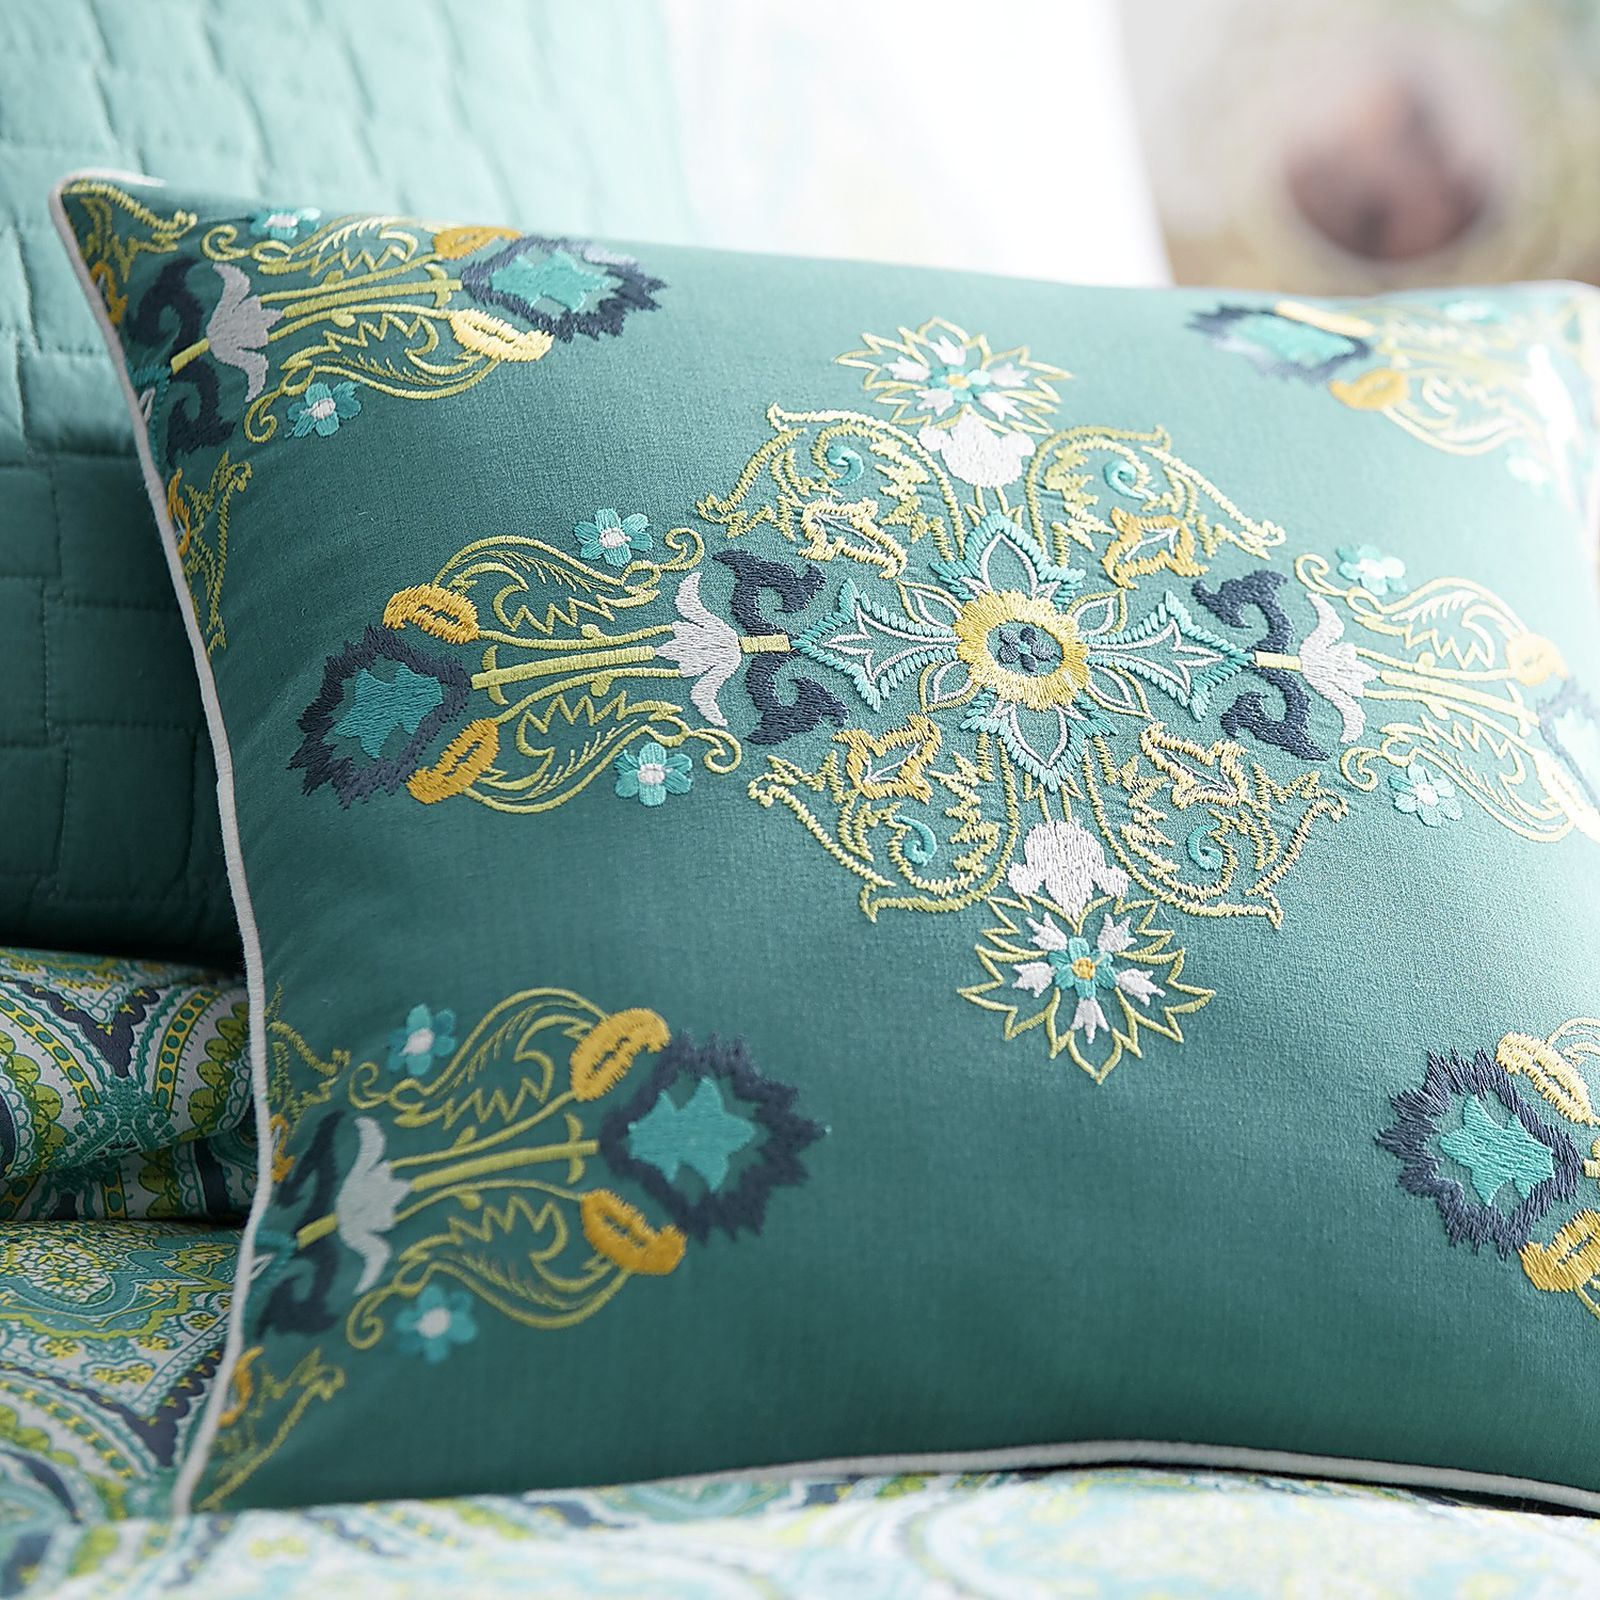 The distinct beauty of Mediterranean tiles can greet you each night when you decorate your bed with our Capri Tile bedding. Crisp cotton coordinates boast an intricate tile-look print of turquoise, blue and yellow. To accent the striking print, add a solid-color throw or some decorative pillows.